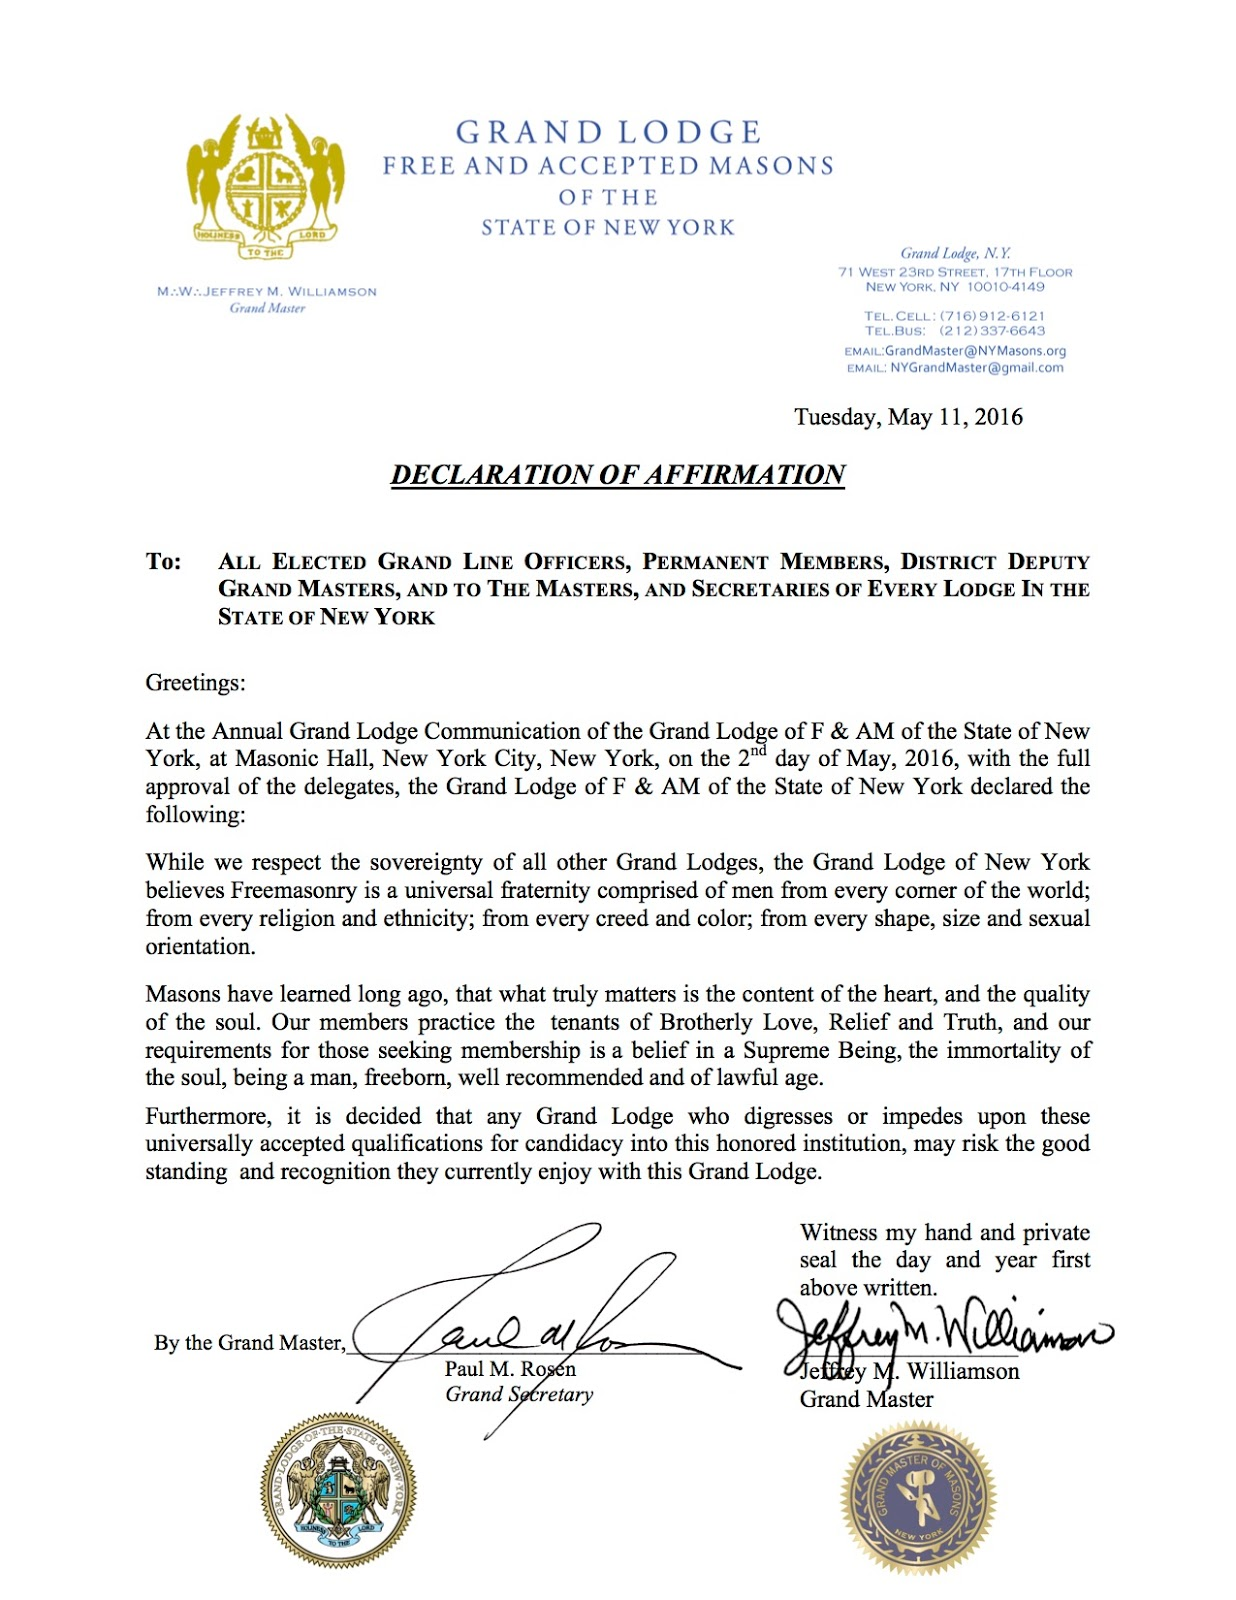 Gl of ny issues statement about ga and tn freemasonry matters a vote was taken at the annual meeting of the grand lodge of new york last week on the question of how to proceed with the situation in georgia and m4hsunfo